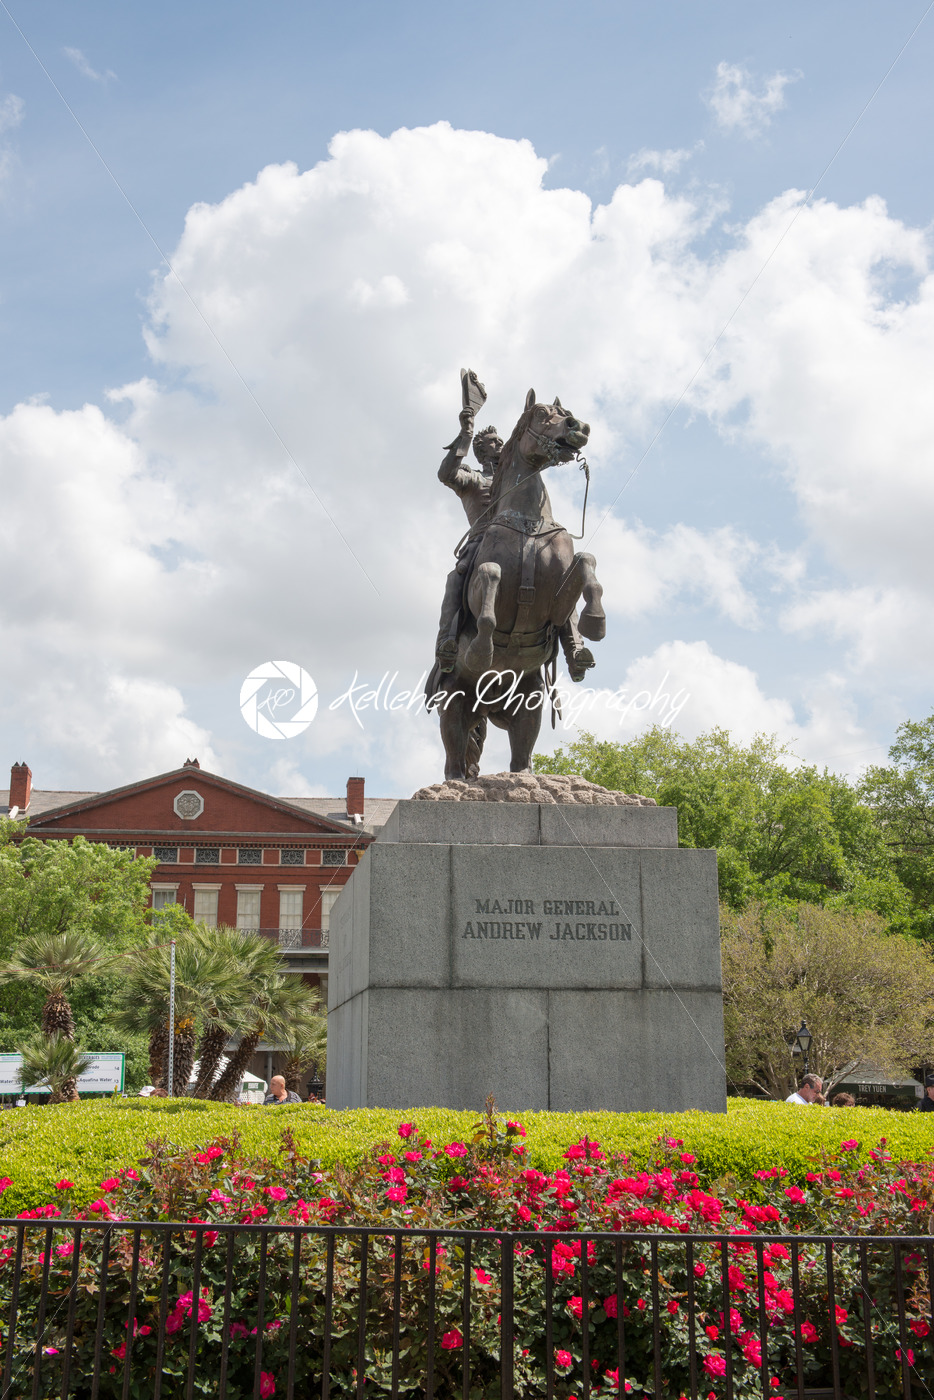 NEW ORLEANS, LA – APRIL 13: Statue of Andrew Jackson at the Jackson Square New Orleans on April 13, 2014 - Kelleher Photography Store